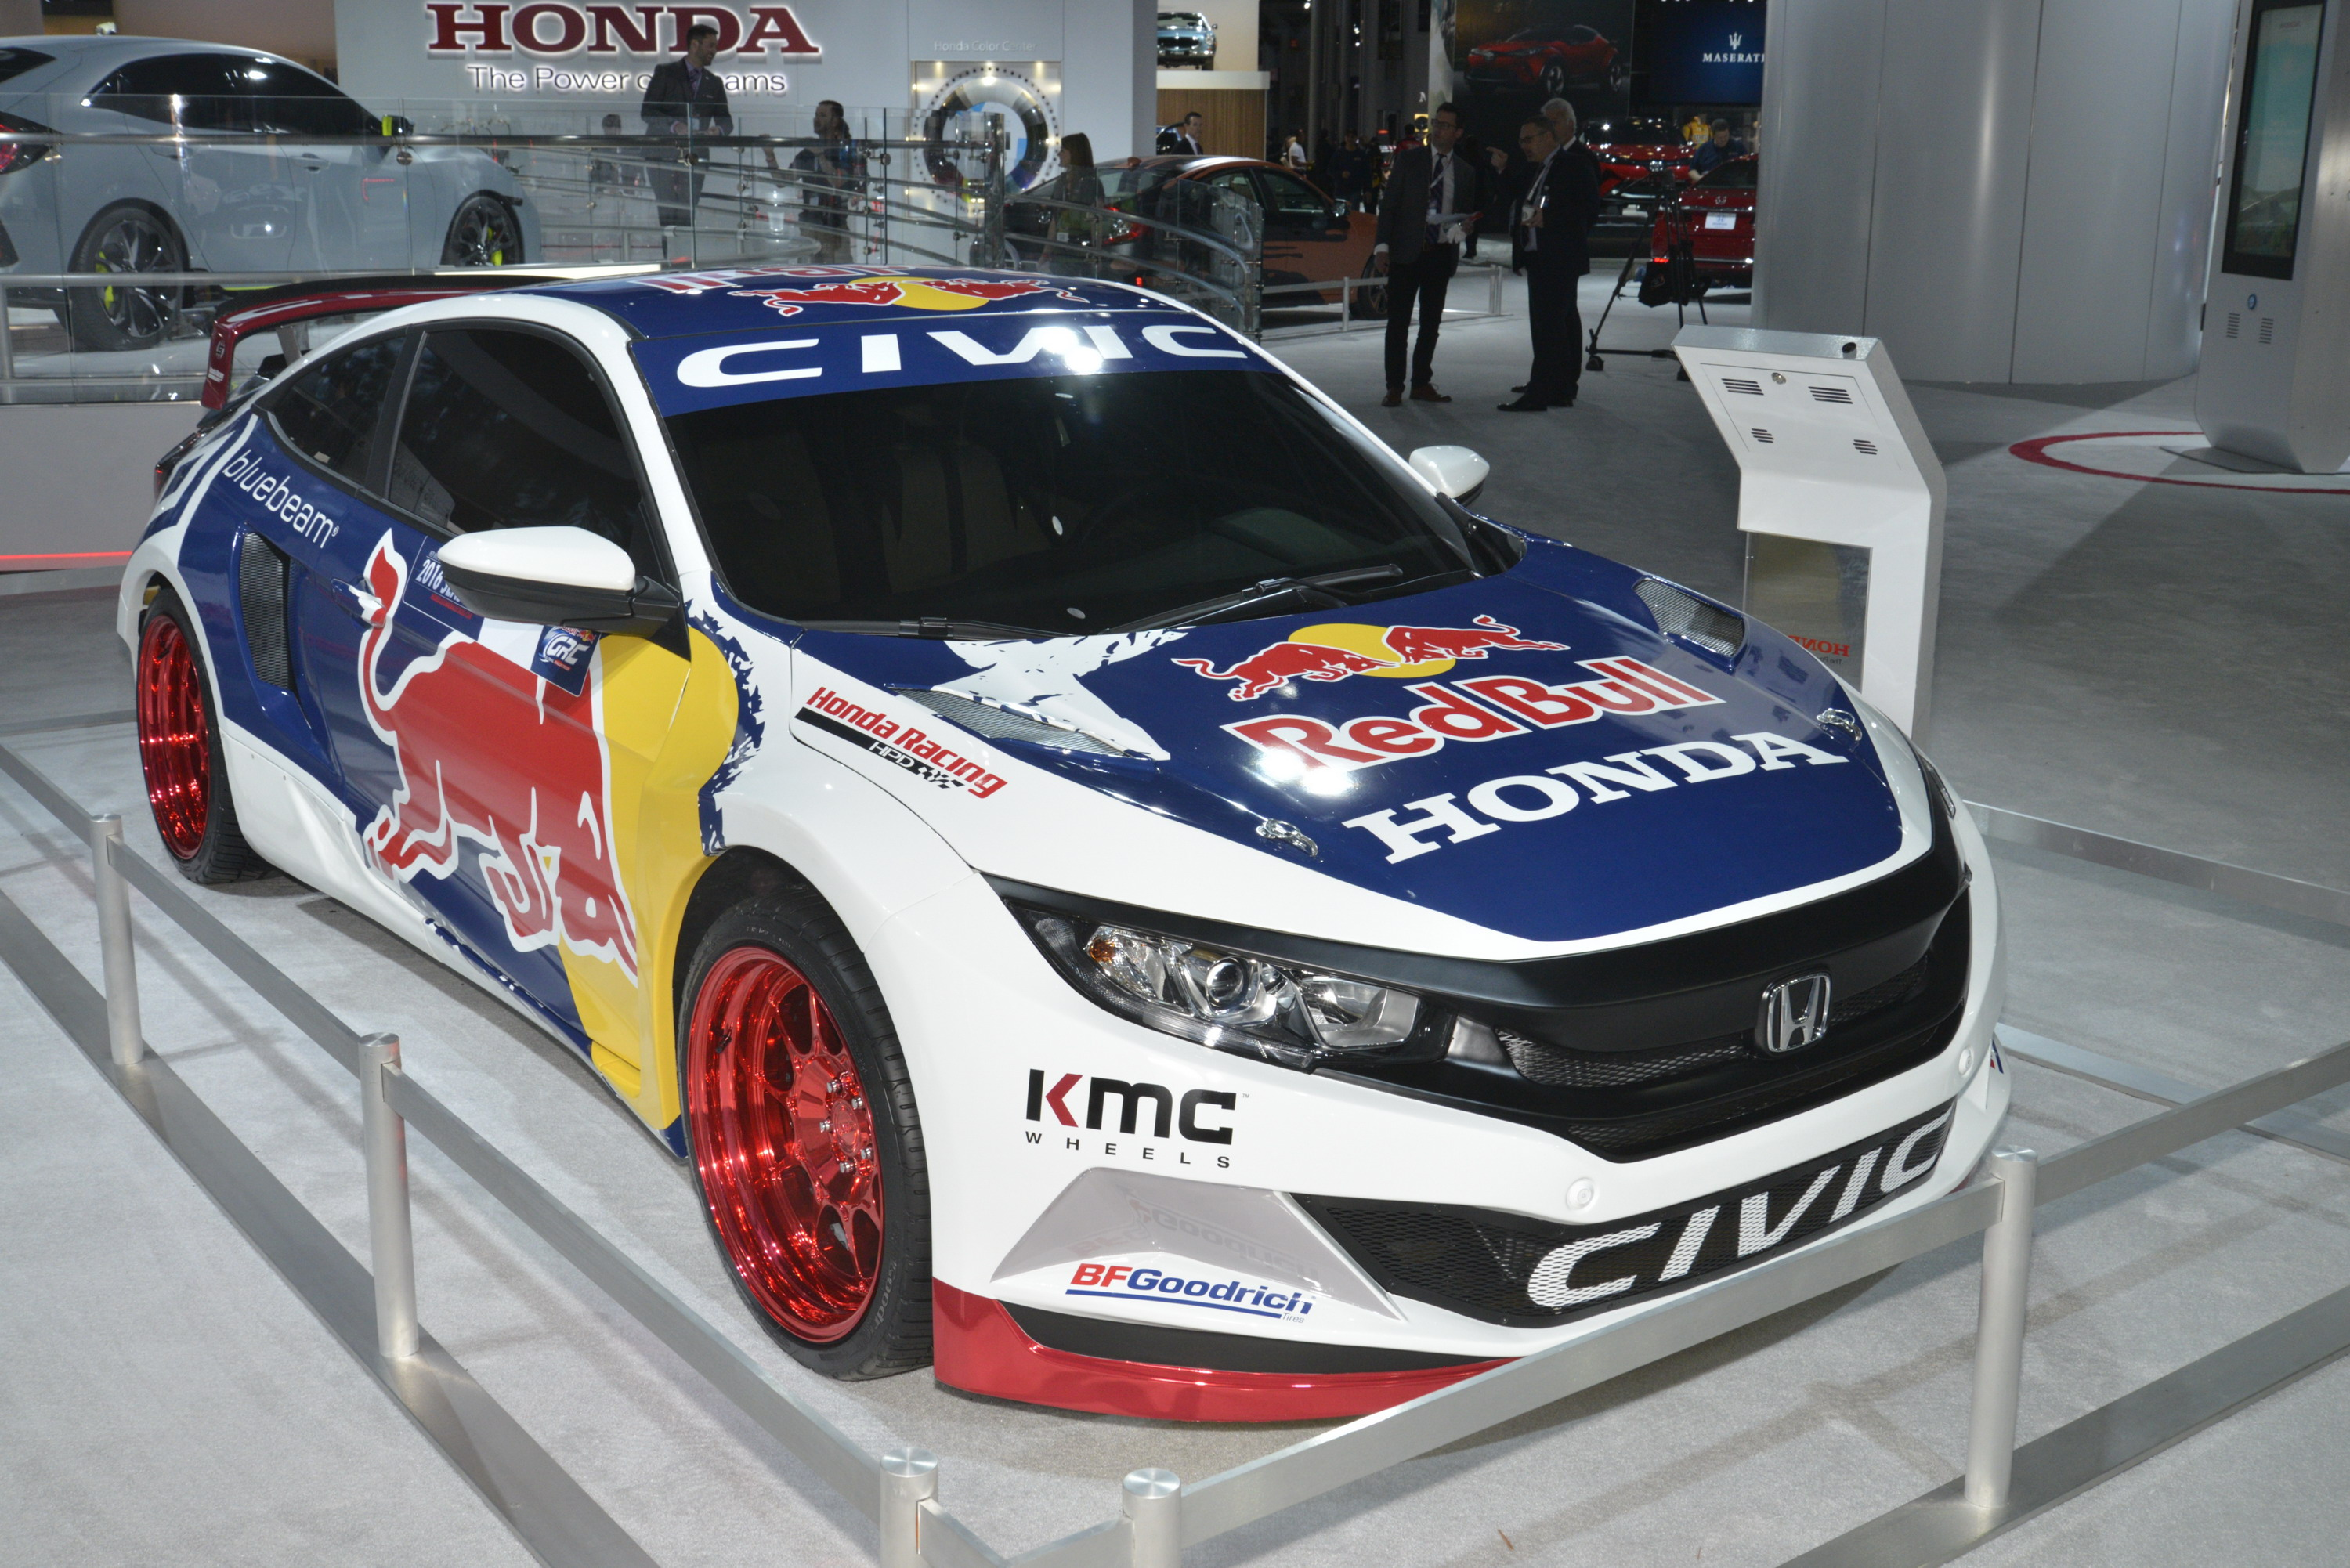 Grc Civic >> 2016 Honda Civic Red Bull Grc Top Speed